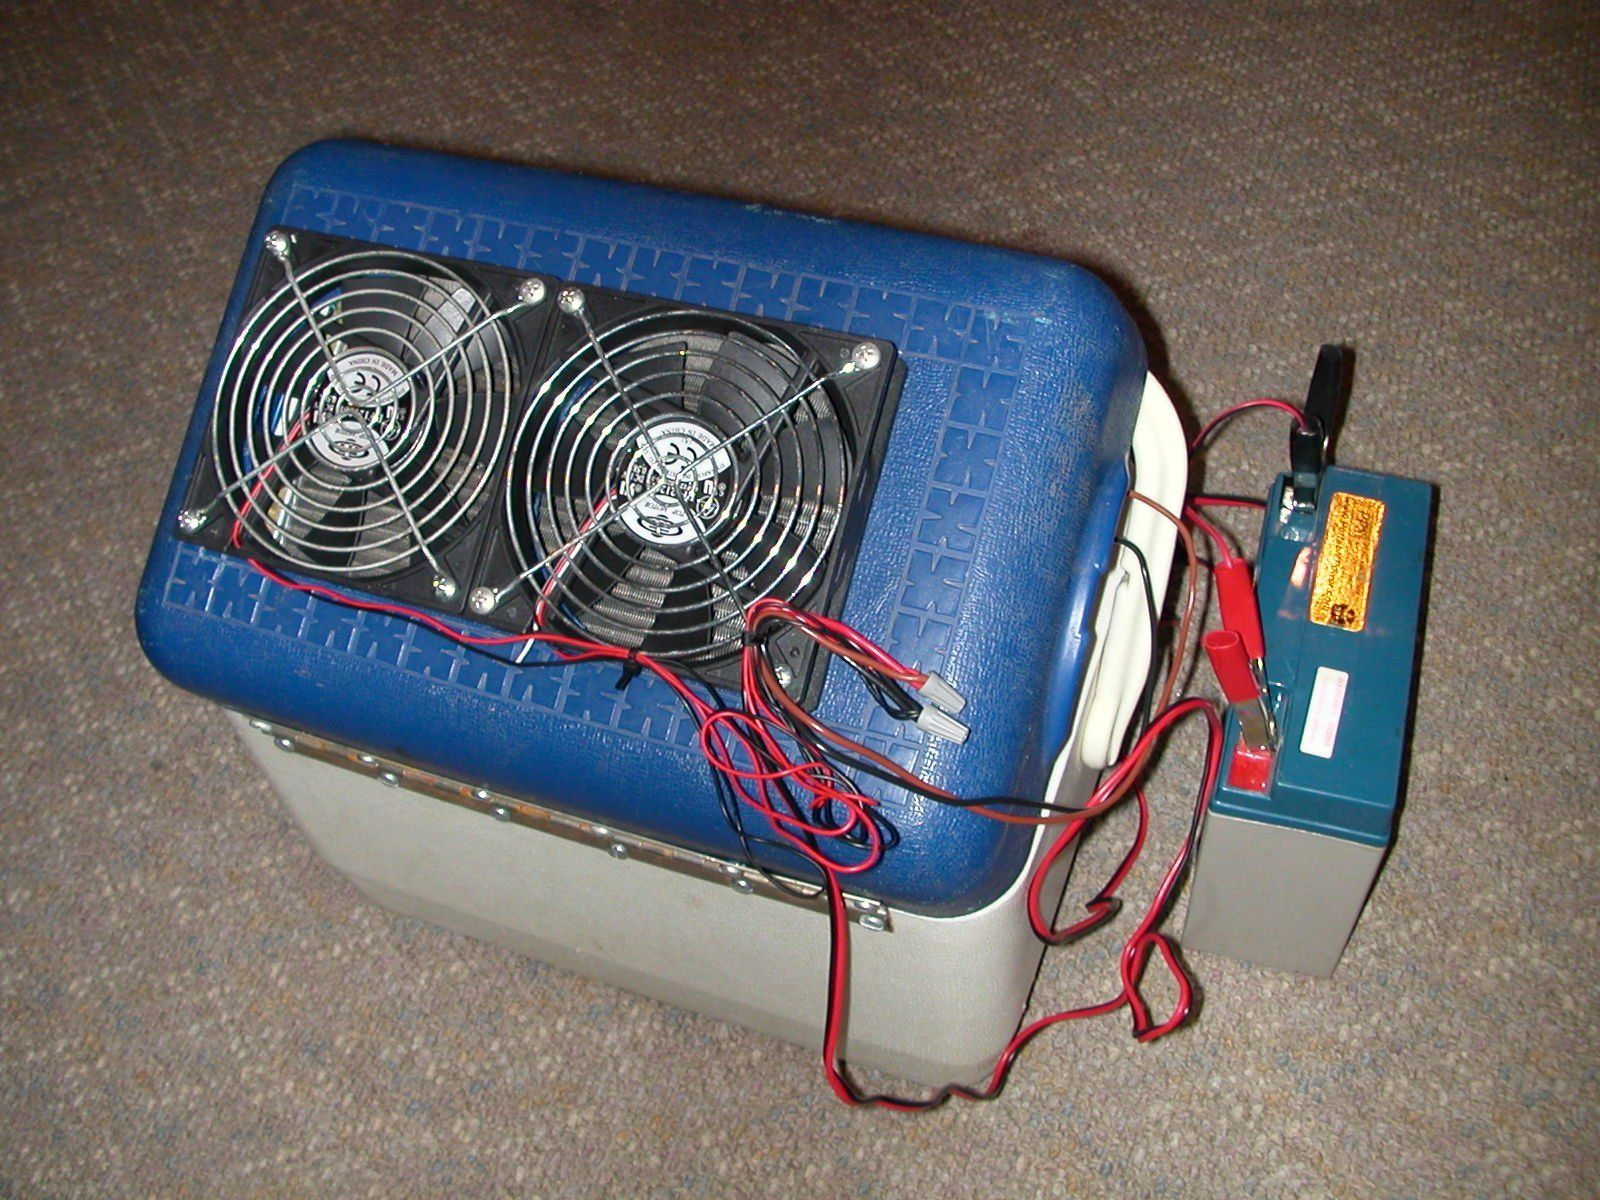 Portable 12V Air Conditioner Cheap and Easy! Diy air